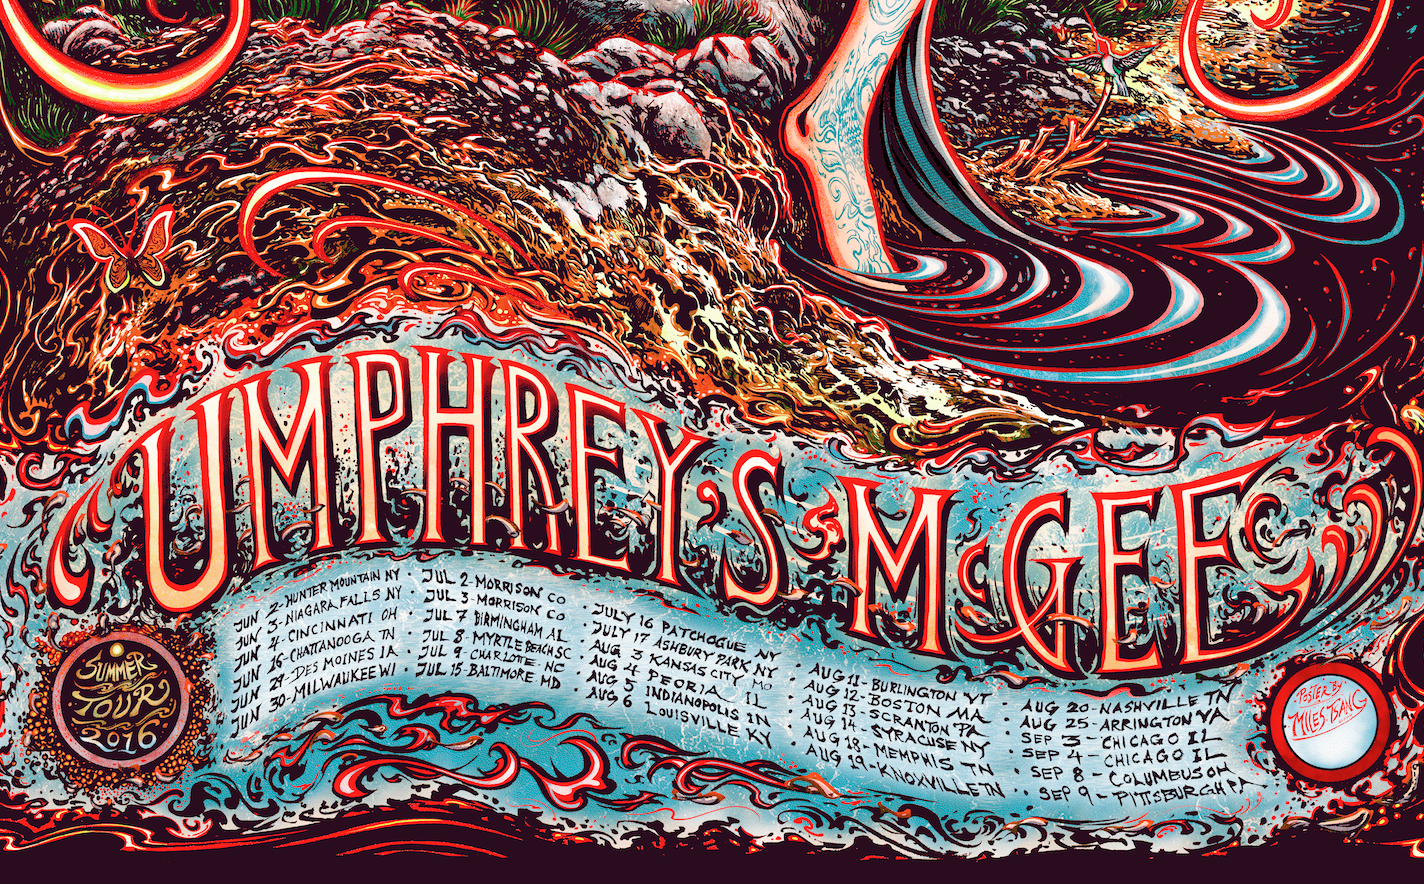 Miles_Tsang-Umphrey's McGee_Gigposter-Summer_Tour_2016-31.png